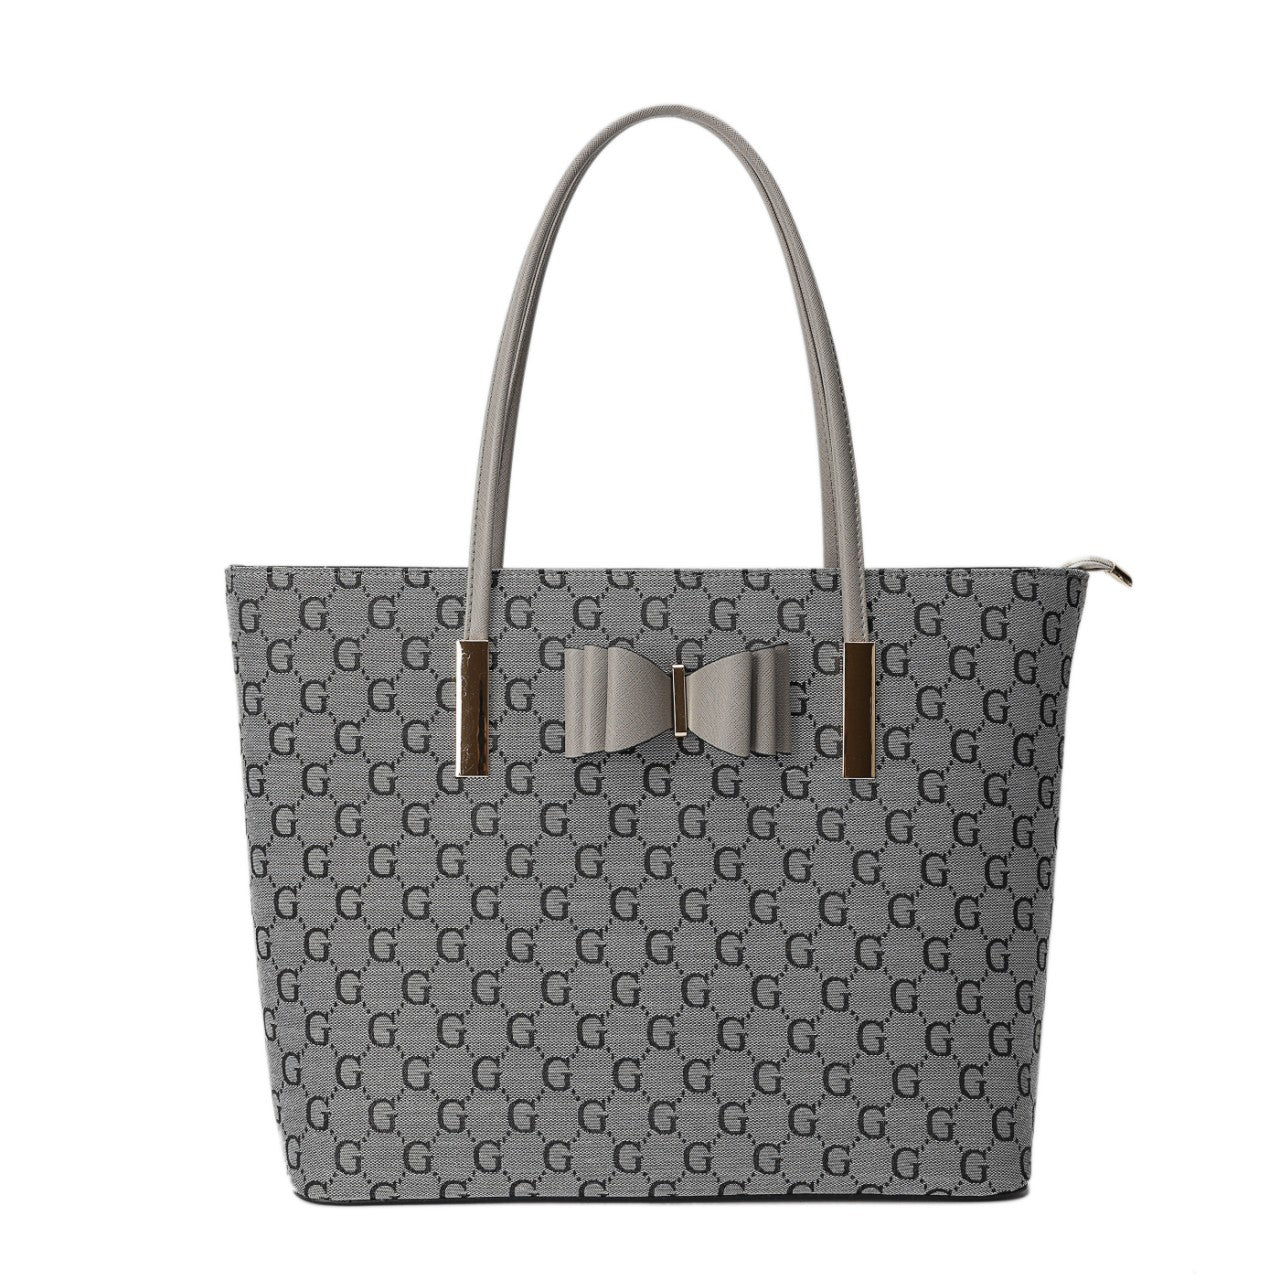 LYDC BOW DETAIL TOTE BAG